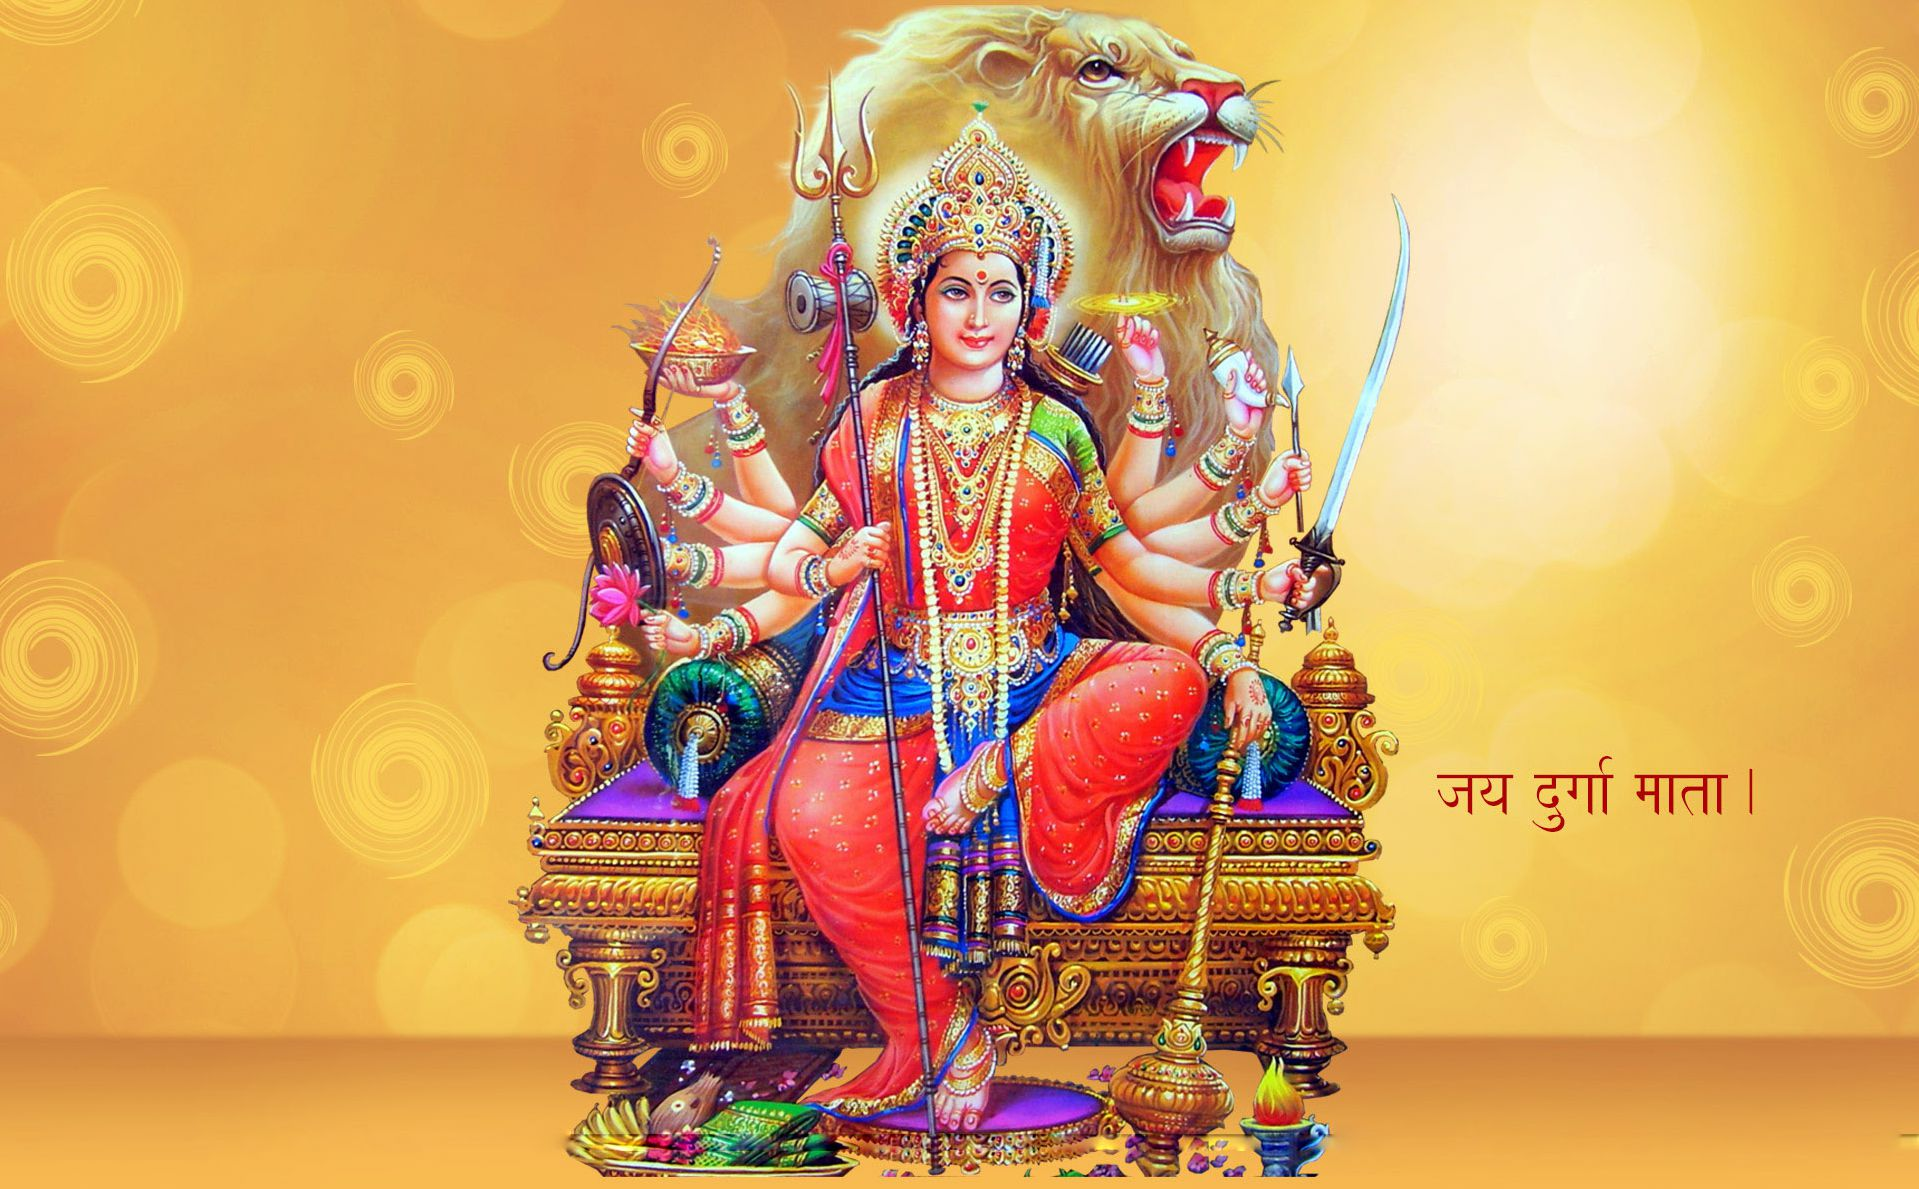 HD Maa Durga Image Wallpaper